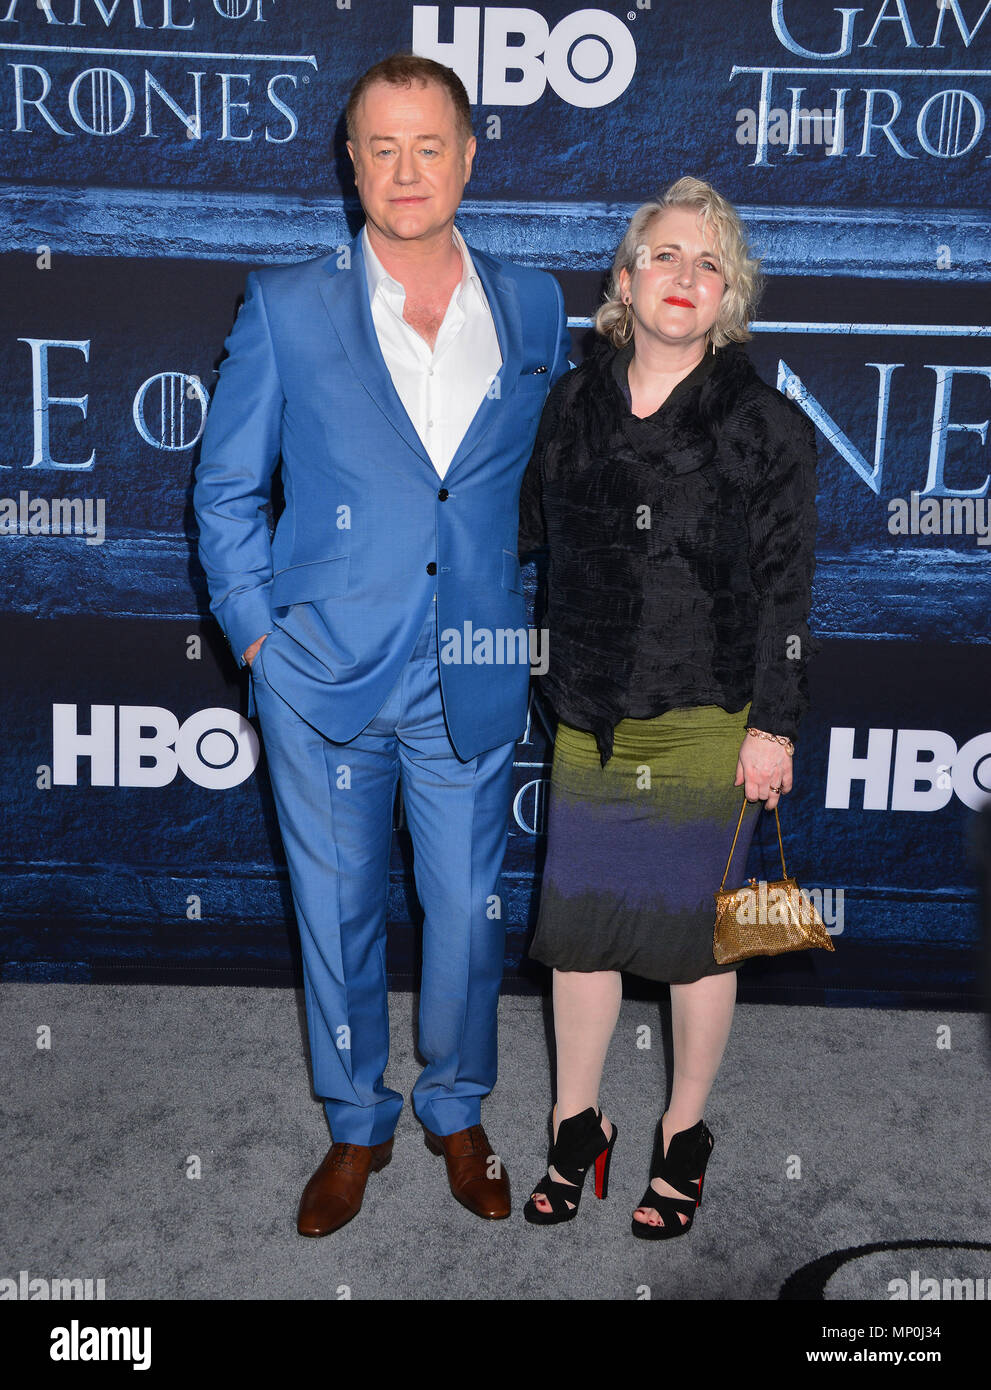 Owen Teale 328 arriving at the Game of Thrones at the TCL Chinese Theatre in Los Angeles. April 10, 2016.Owen Teale 328 ------------- Red Carpet Event, Vertical, USA, Film Industry, Celebrities,  Photography, Bestof, Arts Culture and Entertainment, Topix Celebrities fashion /  Vertical, Best of, Event in Hollywood Life - California,  Red Carpet and backstage, USA, Film Industry, Celebrities,  movie celebrities, TV celebrities, Music celebrities, Photography, Bestof, Arts Culture and Entertainment,  Topix, vertical,  family from from the year , 2016, inquiry tsuni@Gamma-USA.com Husband and wife Stock Photo